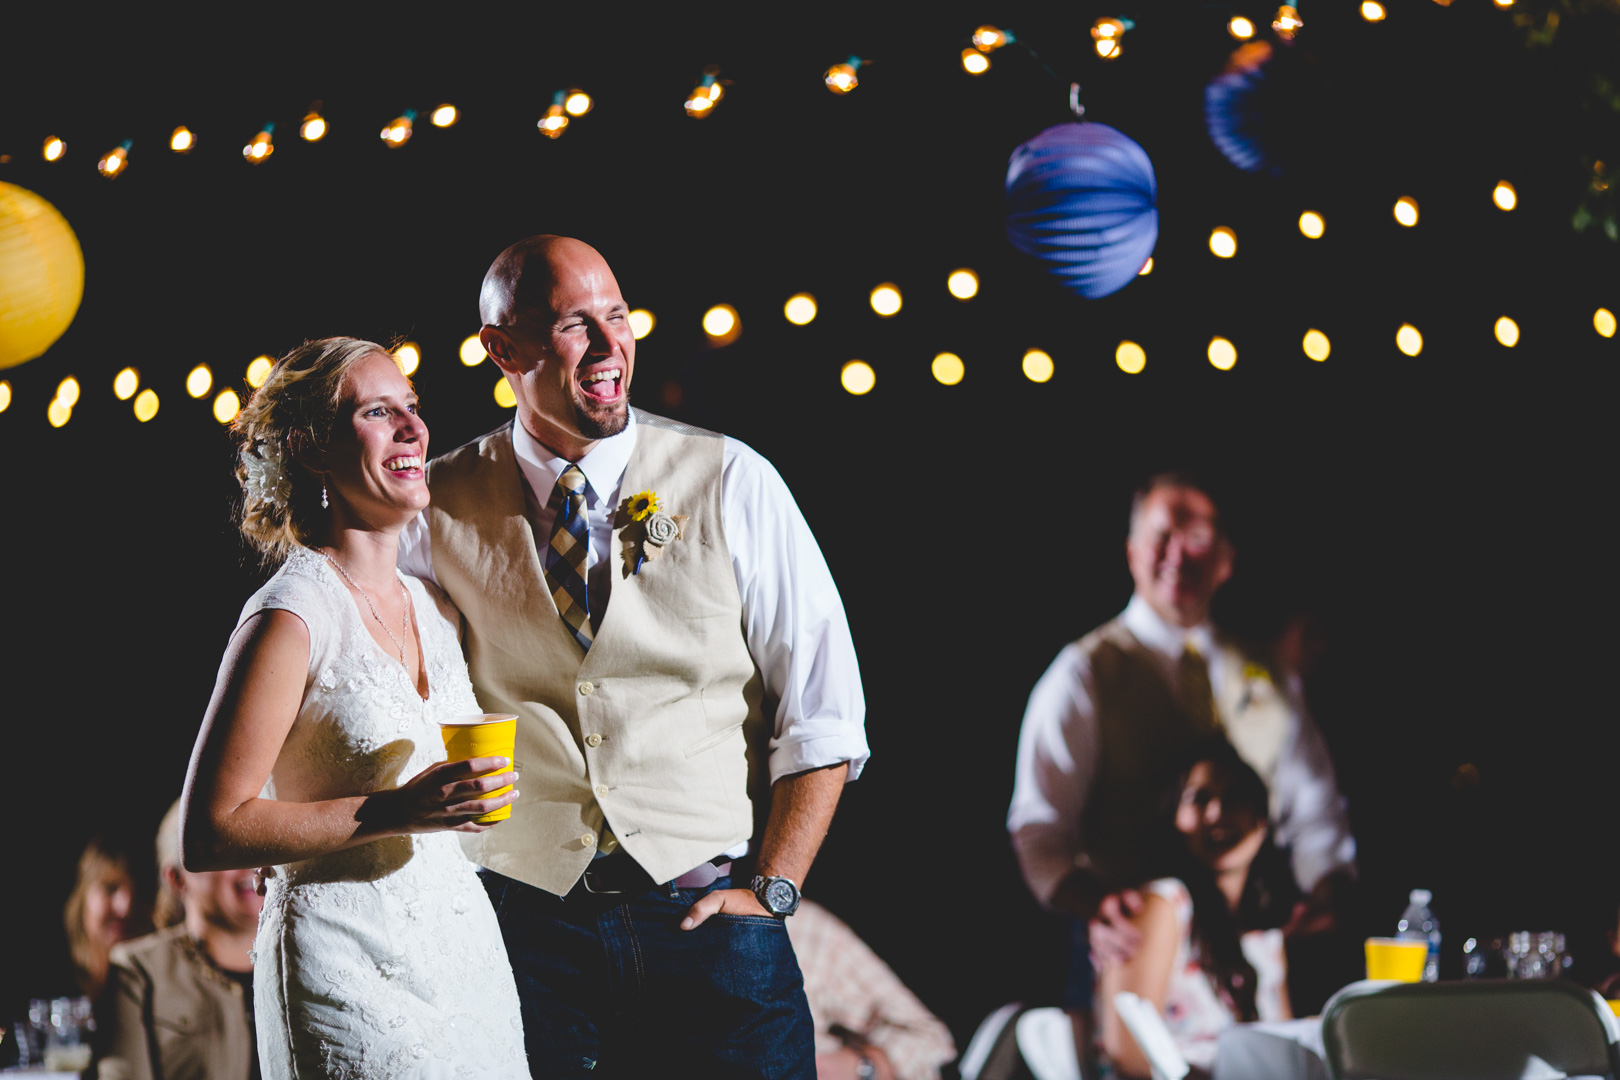 So many of our clients tell us how much they love our candid reception photos. We use off-camera flashes on light stands for evening receptions like this one, and they often become client favorites.